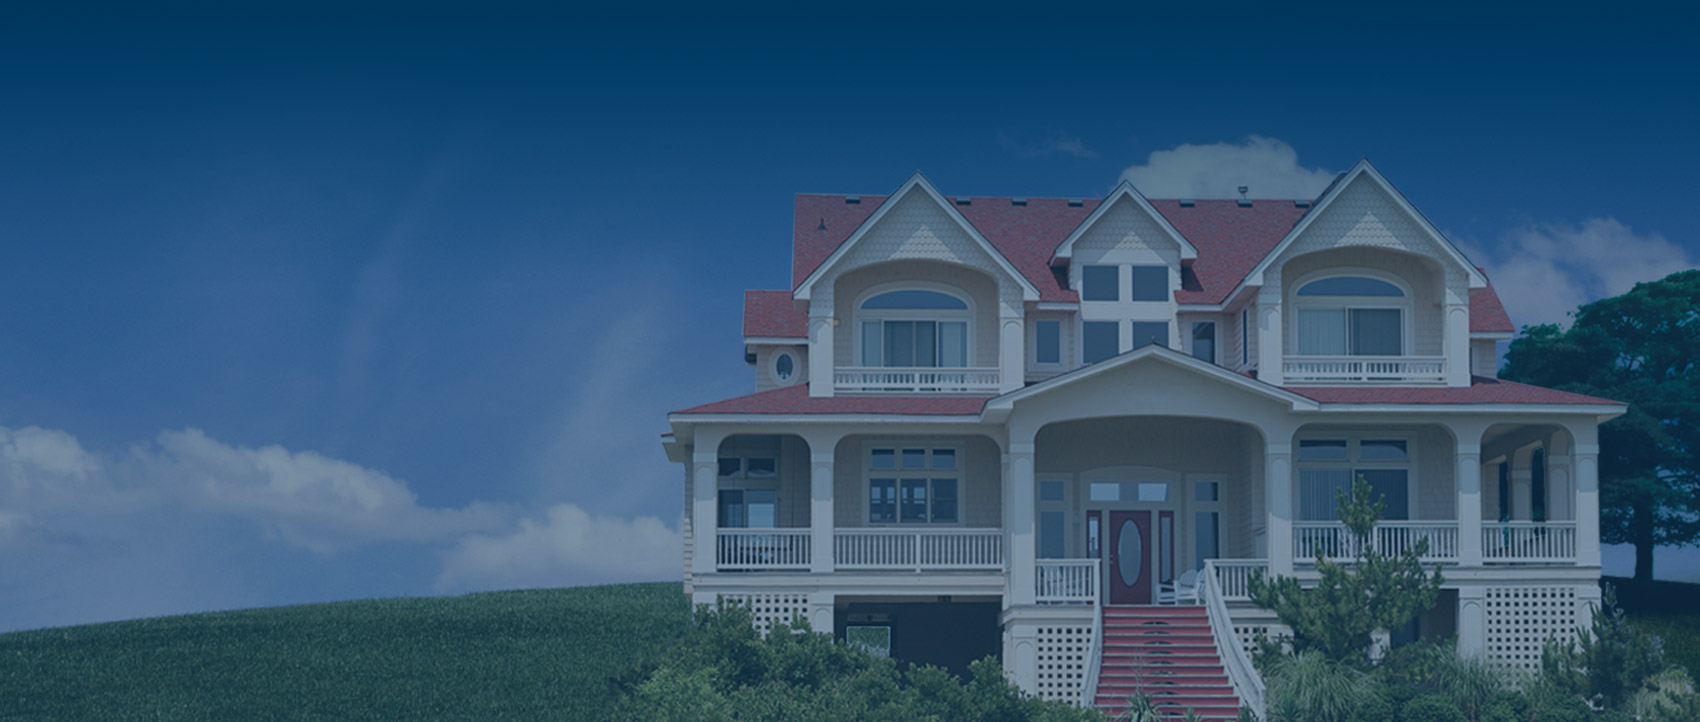 Home Inspection Checklist in Rock Hill